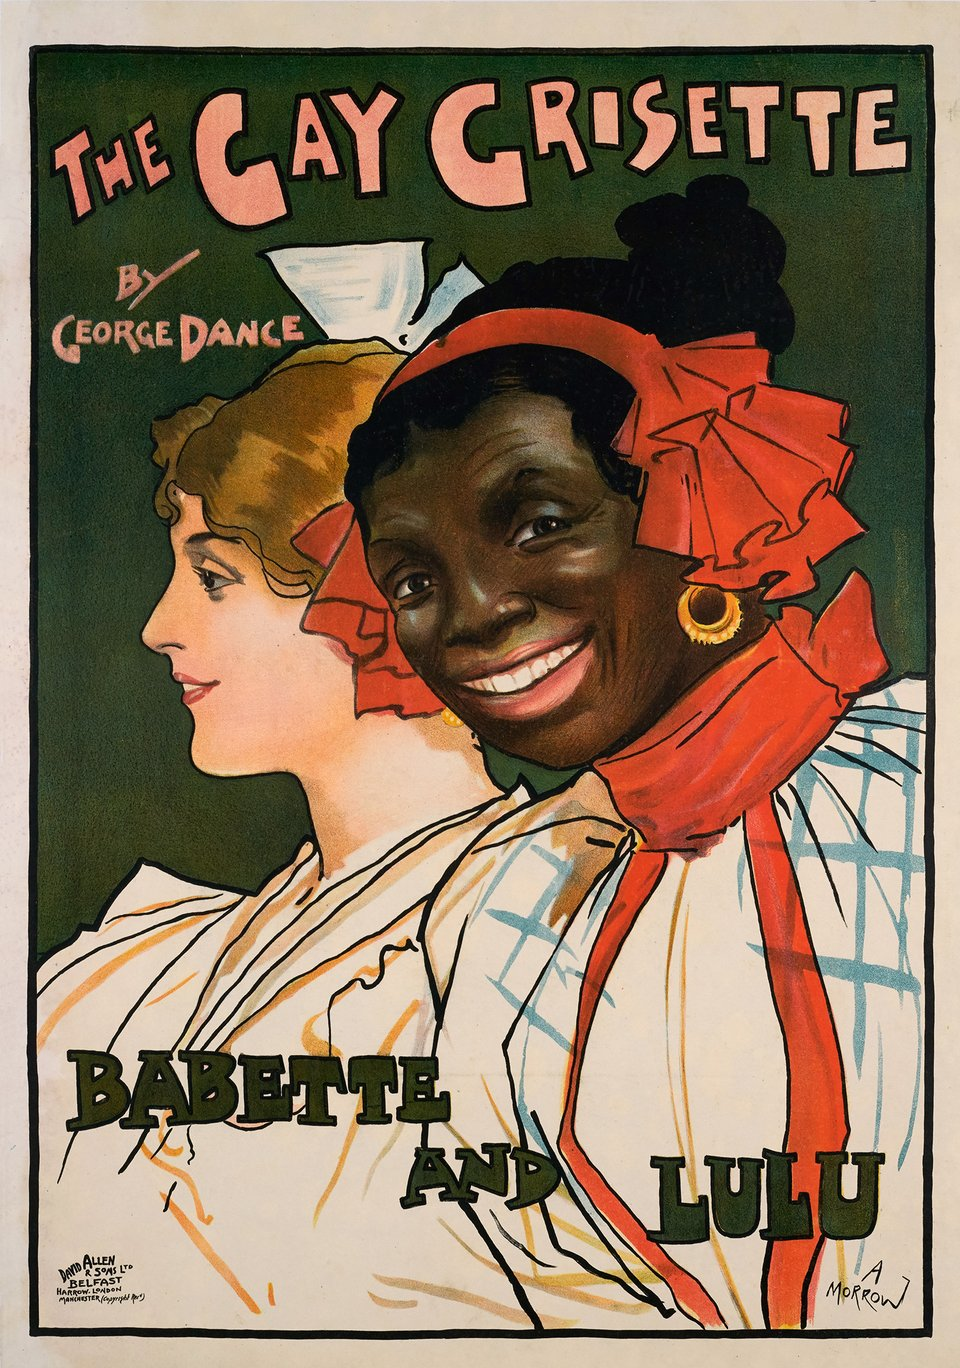 The Gay Grisette, Babette and Lulu – Vintage poster – Albert MORROW – 1900